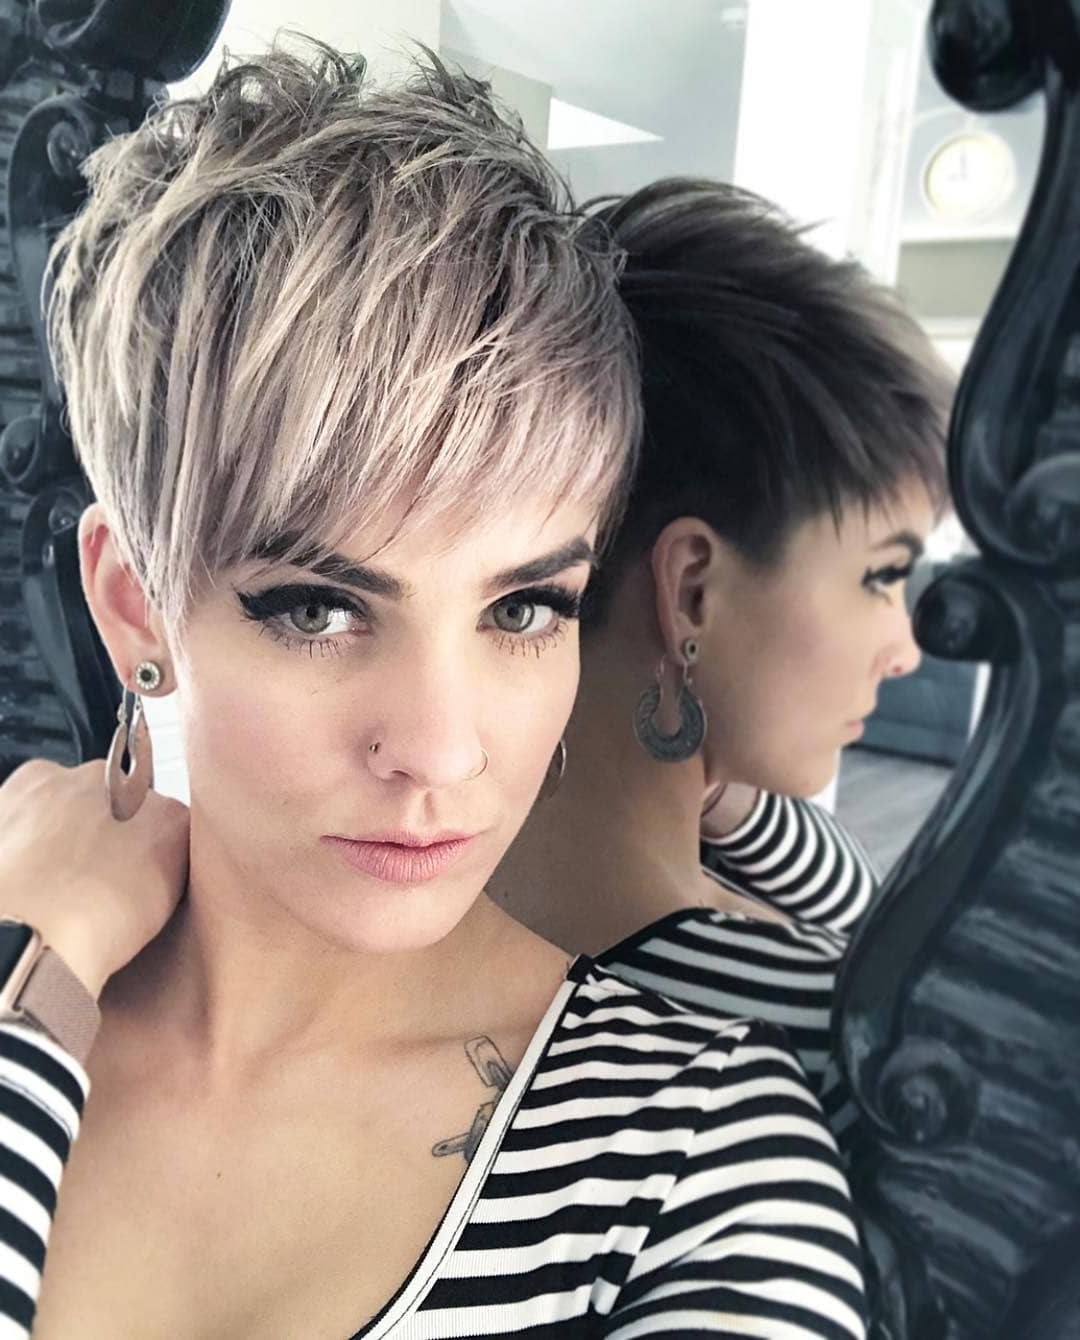 Top 10 Most Flattering Pixie Haircuts For Women, Short Hair Styles 2019 Within Edgy Pixie Haircuts With Long Angled Layers (View 5 of 20)